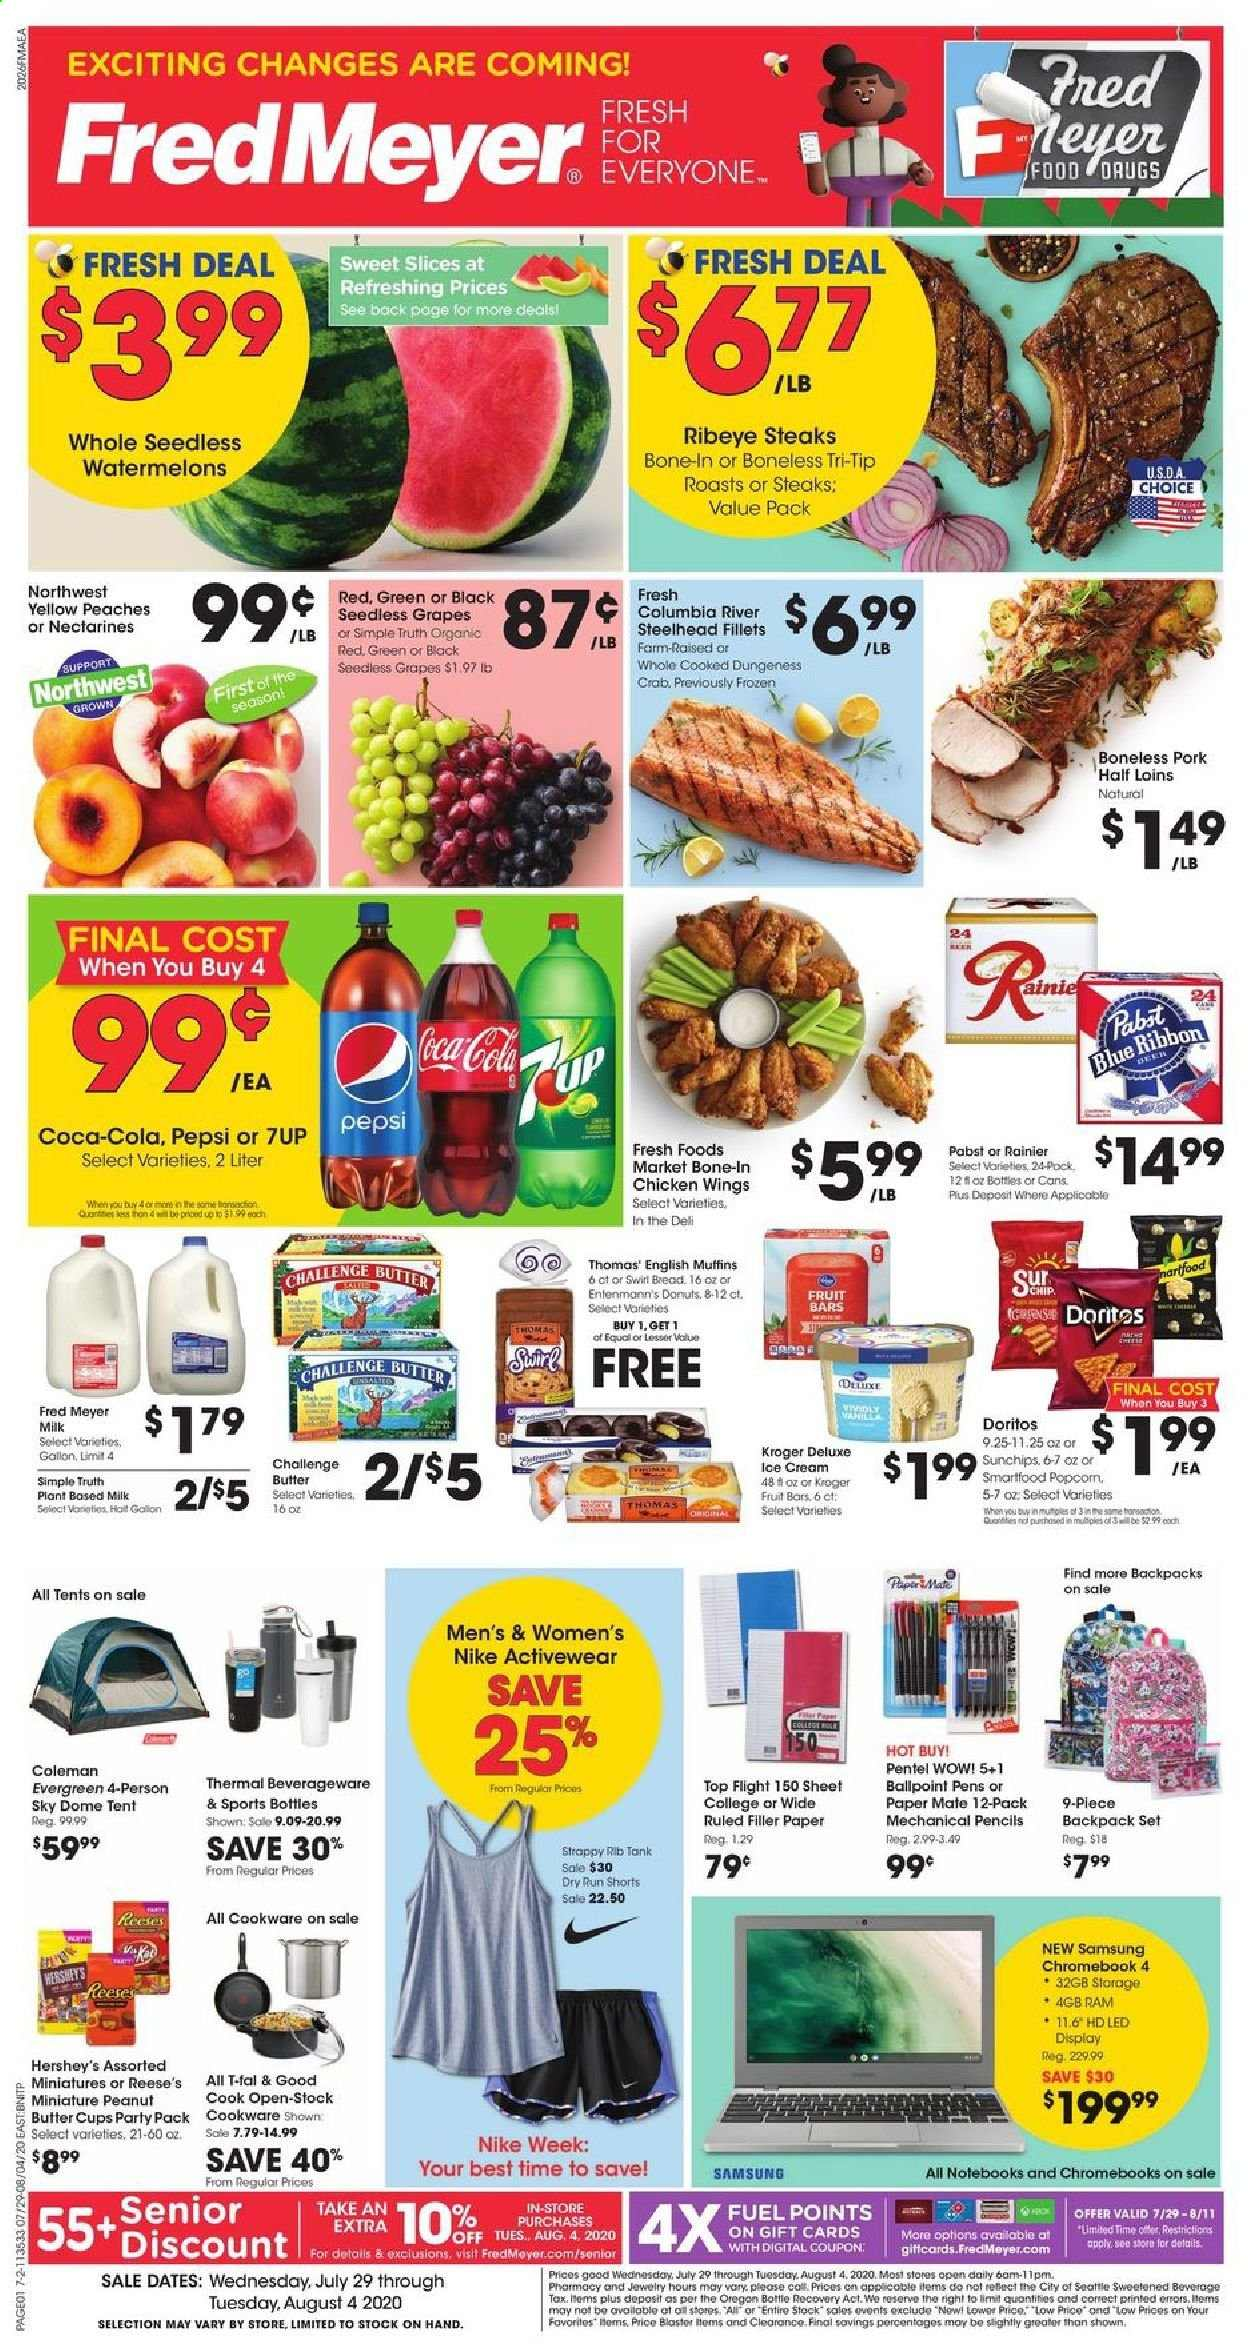 Fred Meyer Flyer - 07.29.2020 - 08.04.2020 - Sales products - backpack, bottle, butter, coca-cola, dates, deer, doritos, english muffins, columbia, fuel, grapes, mate, milk, muffins, nectarines, samsung, seedless grapes, sheet, shorts, tent, chromebook, popcorn, pork meat, chicken, peaches, peanuts, pepsi, nike, chicken wings, donuts, reese, pencils, fruit, crab, wings, cream, ribbon, donut, party pack, peache. Page 1.